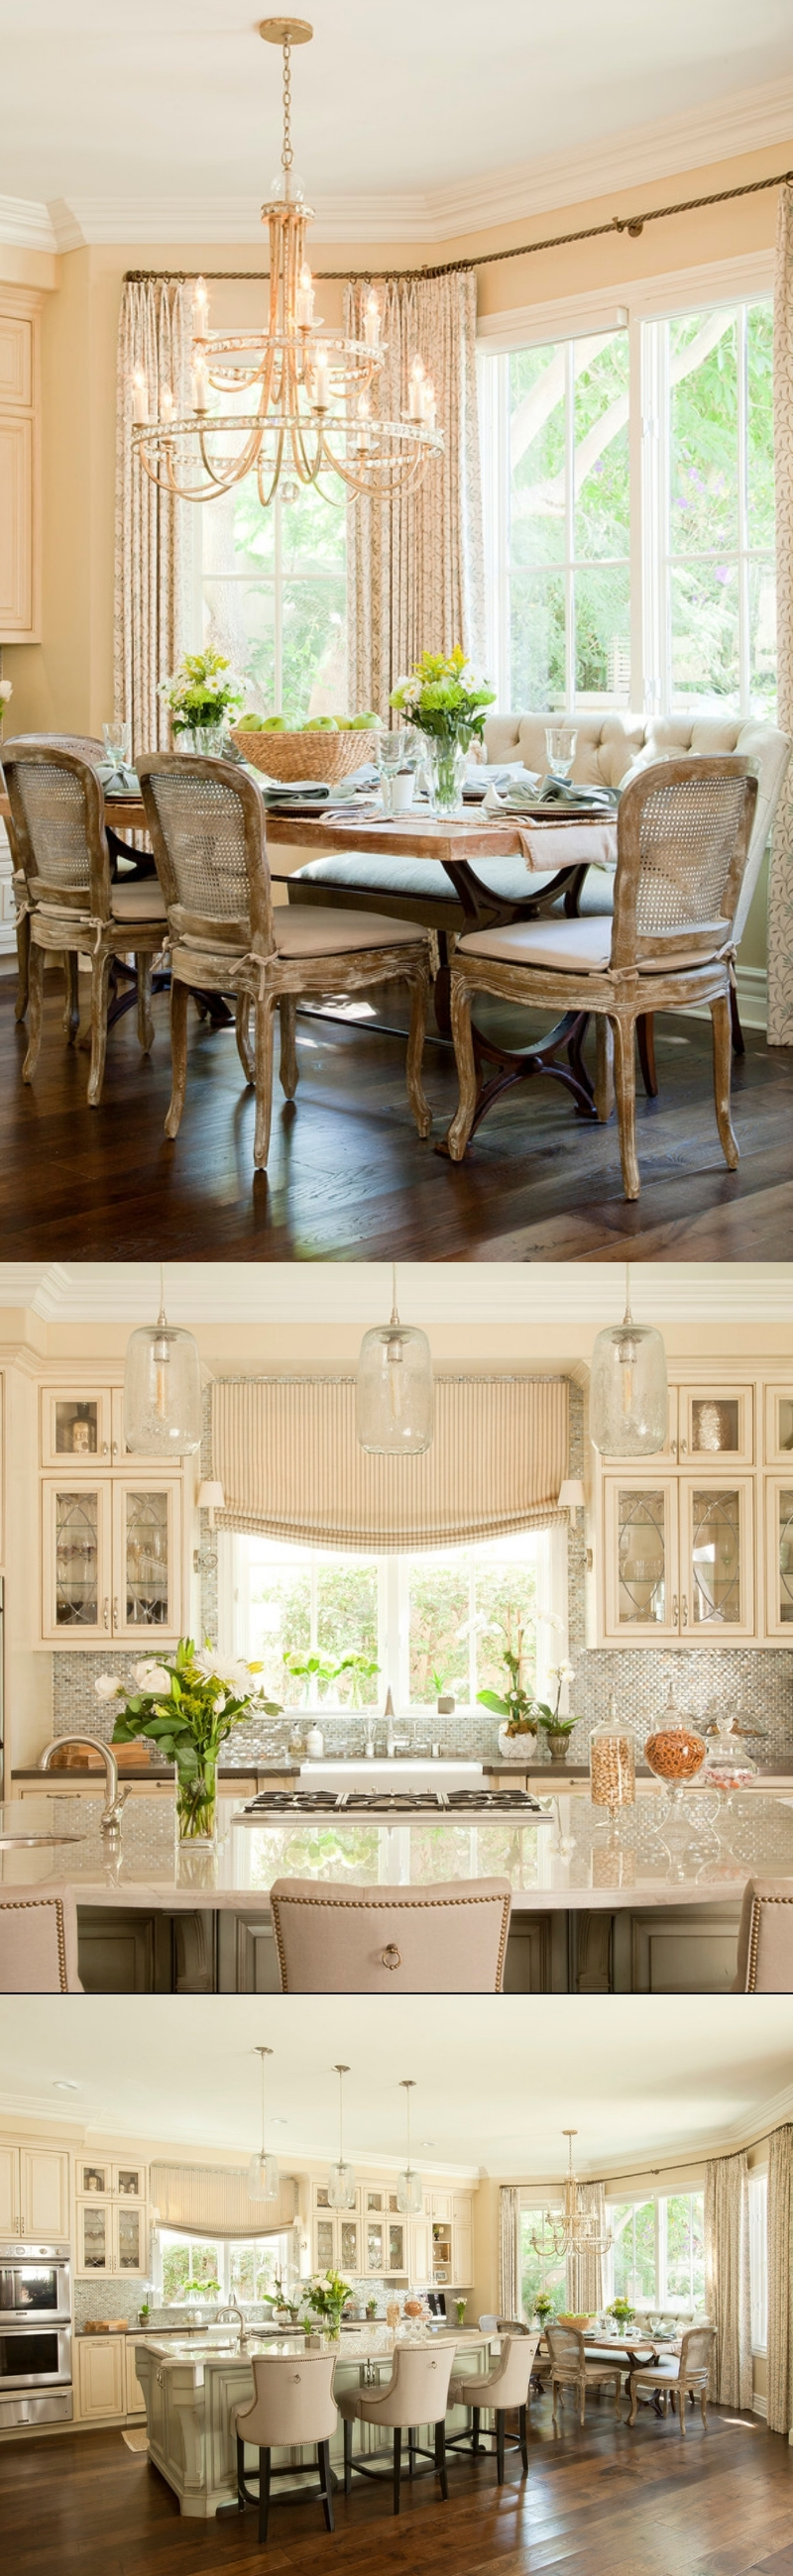 bay window ideas with window seat